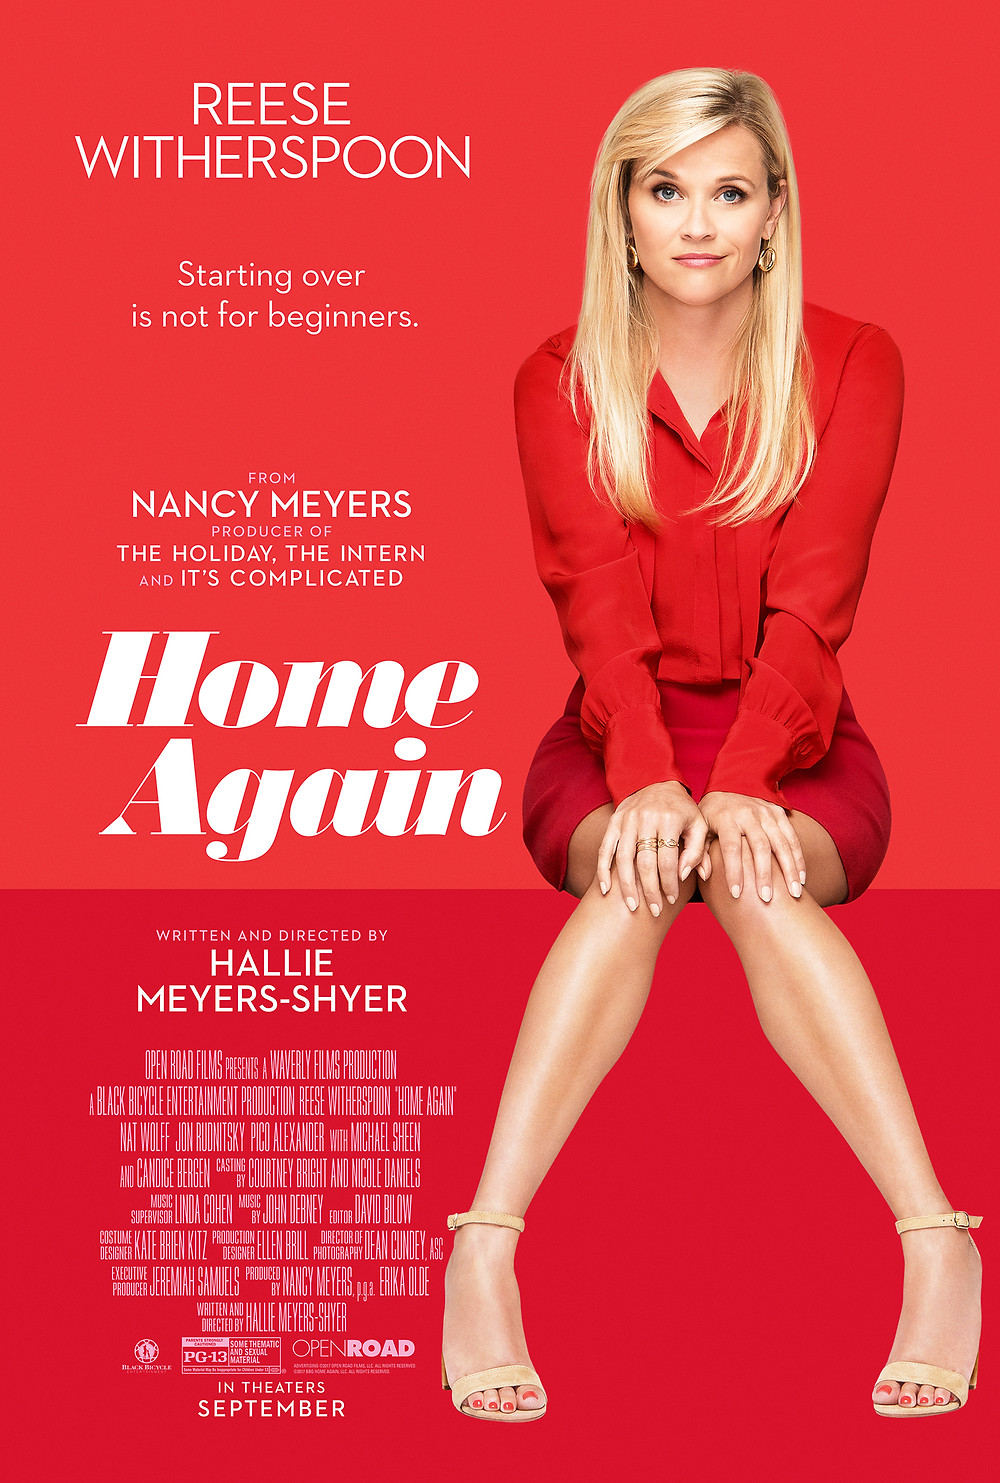 Reese Witherspoon used Wix in Home Again